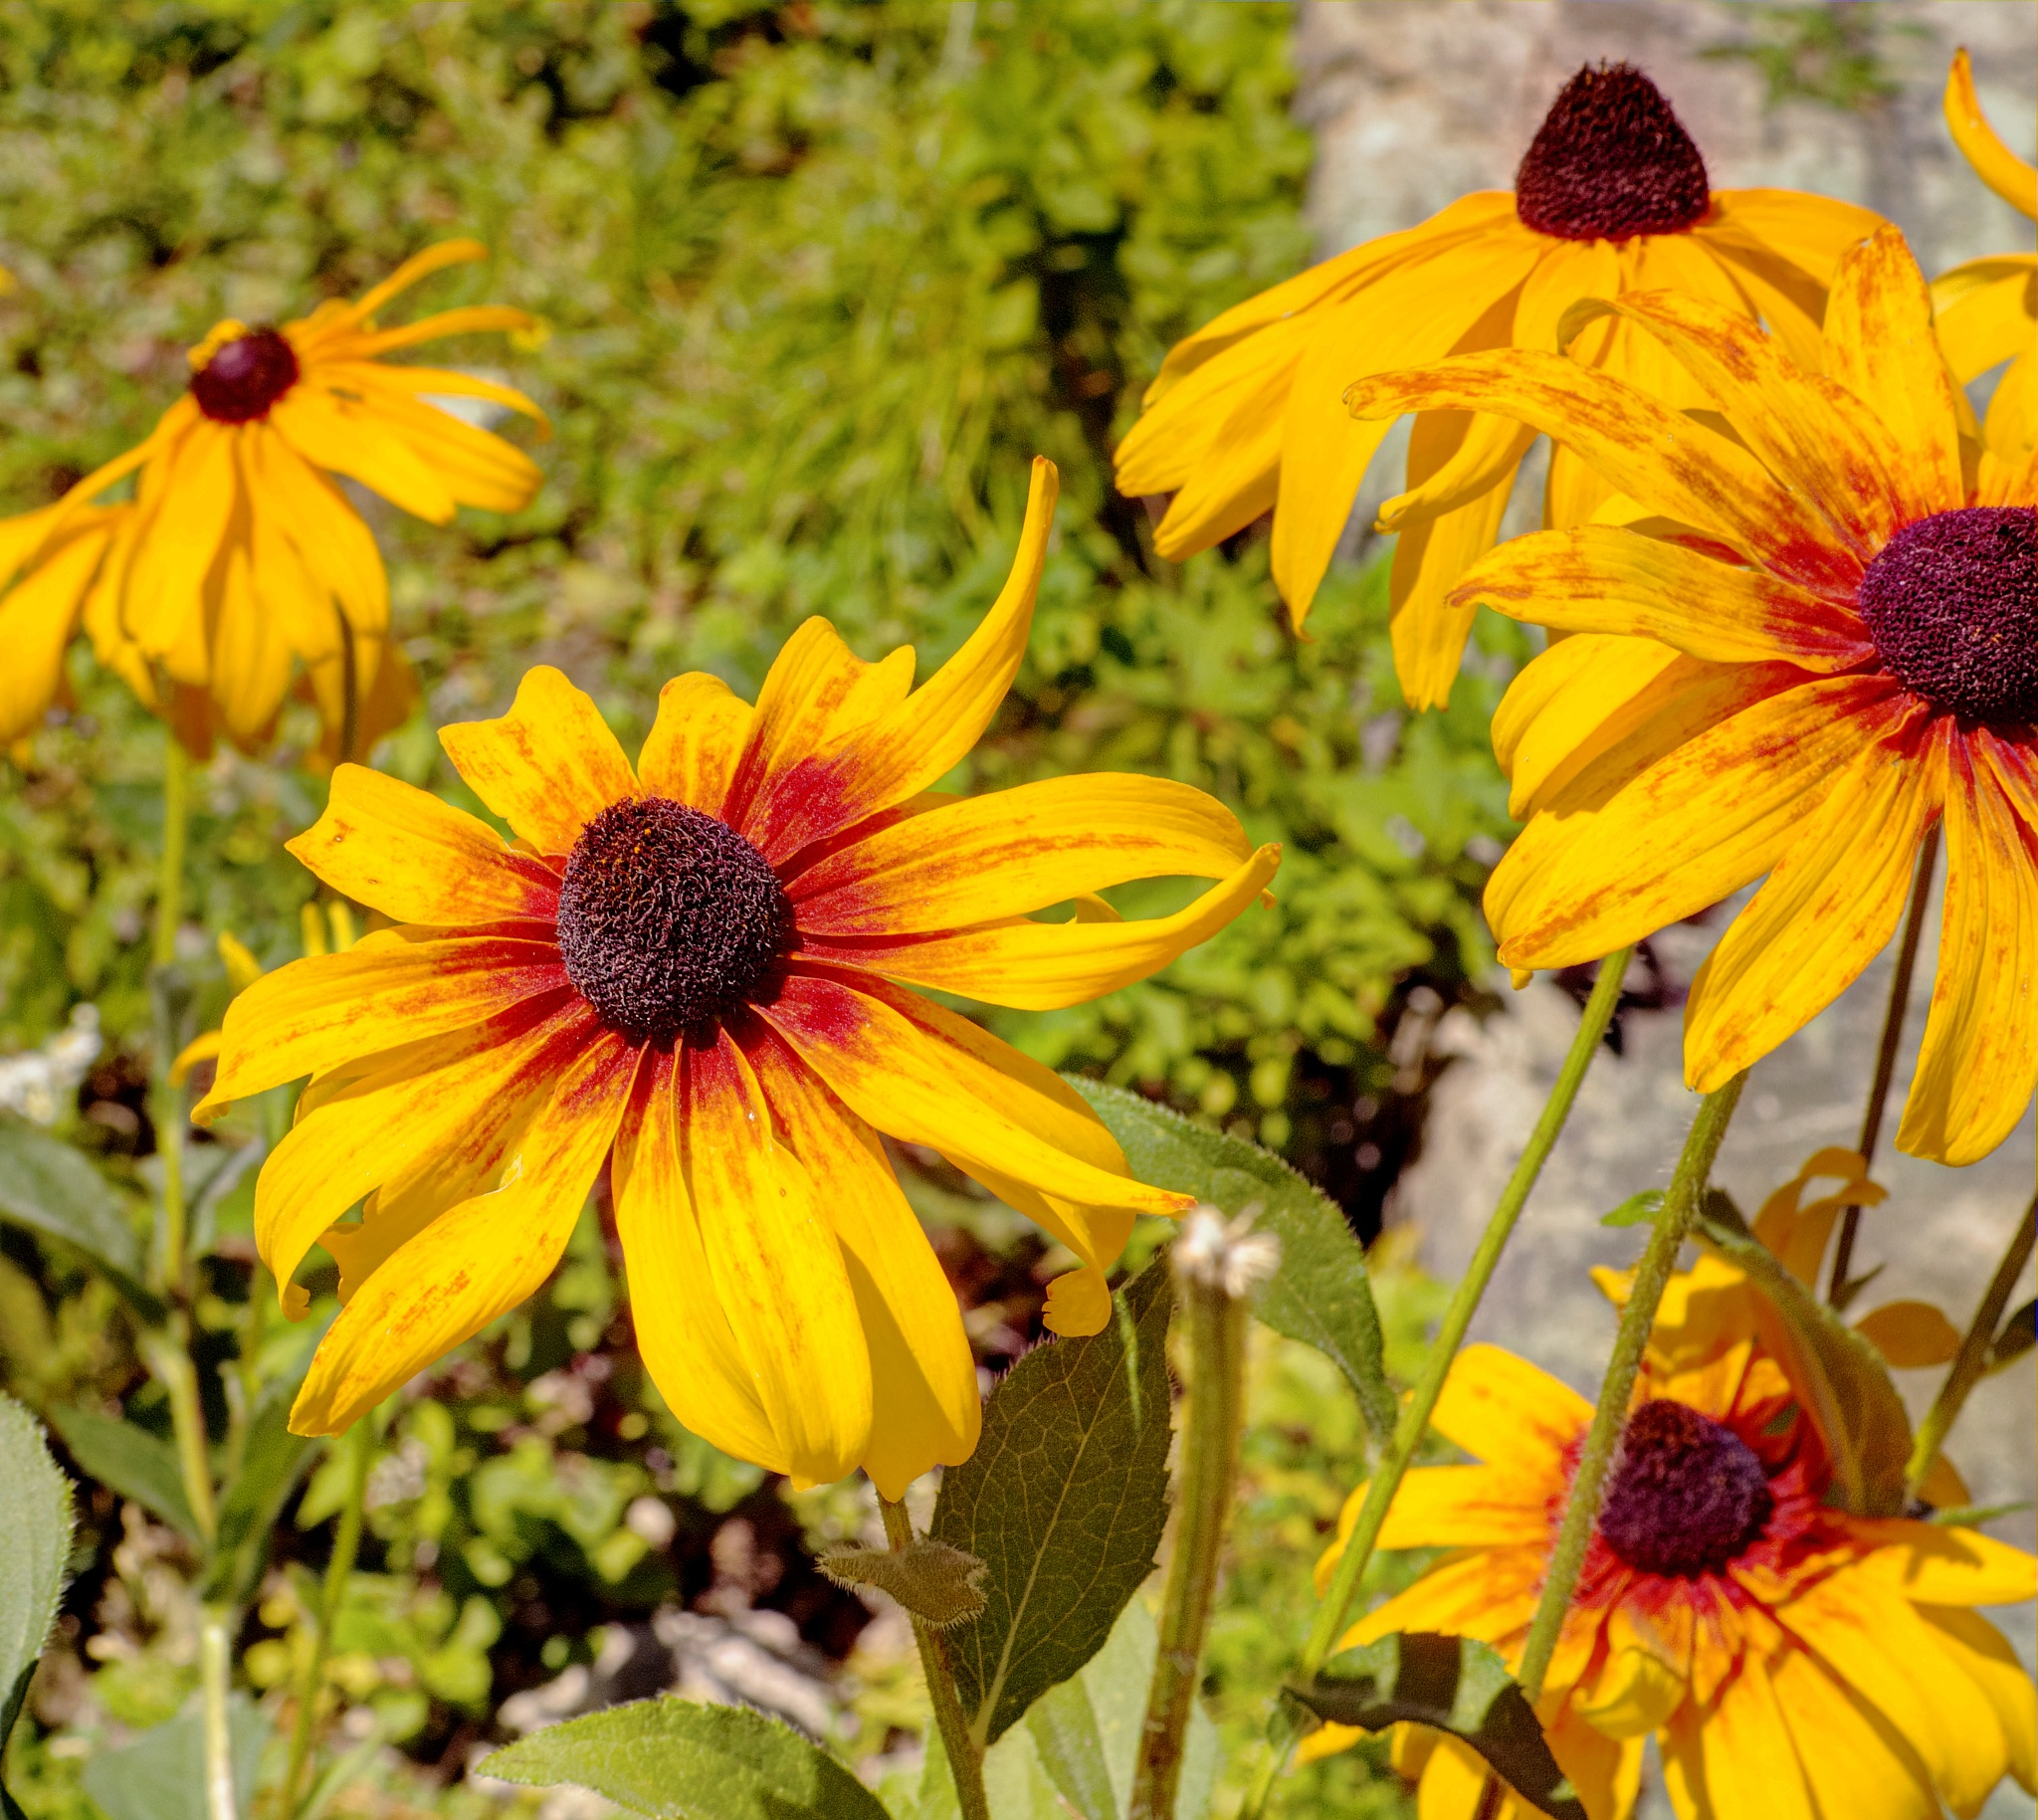 Rudbeckia by zvnktomasevic